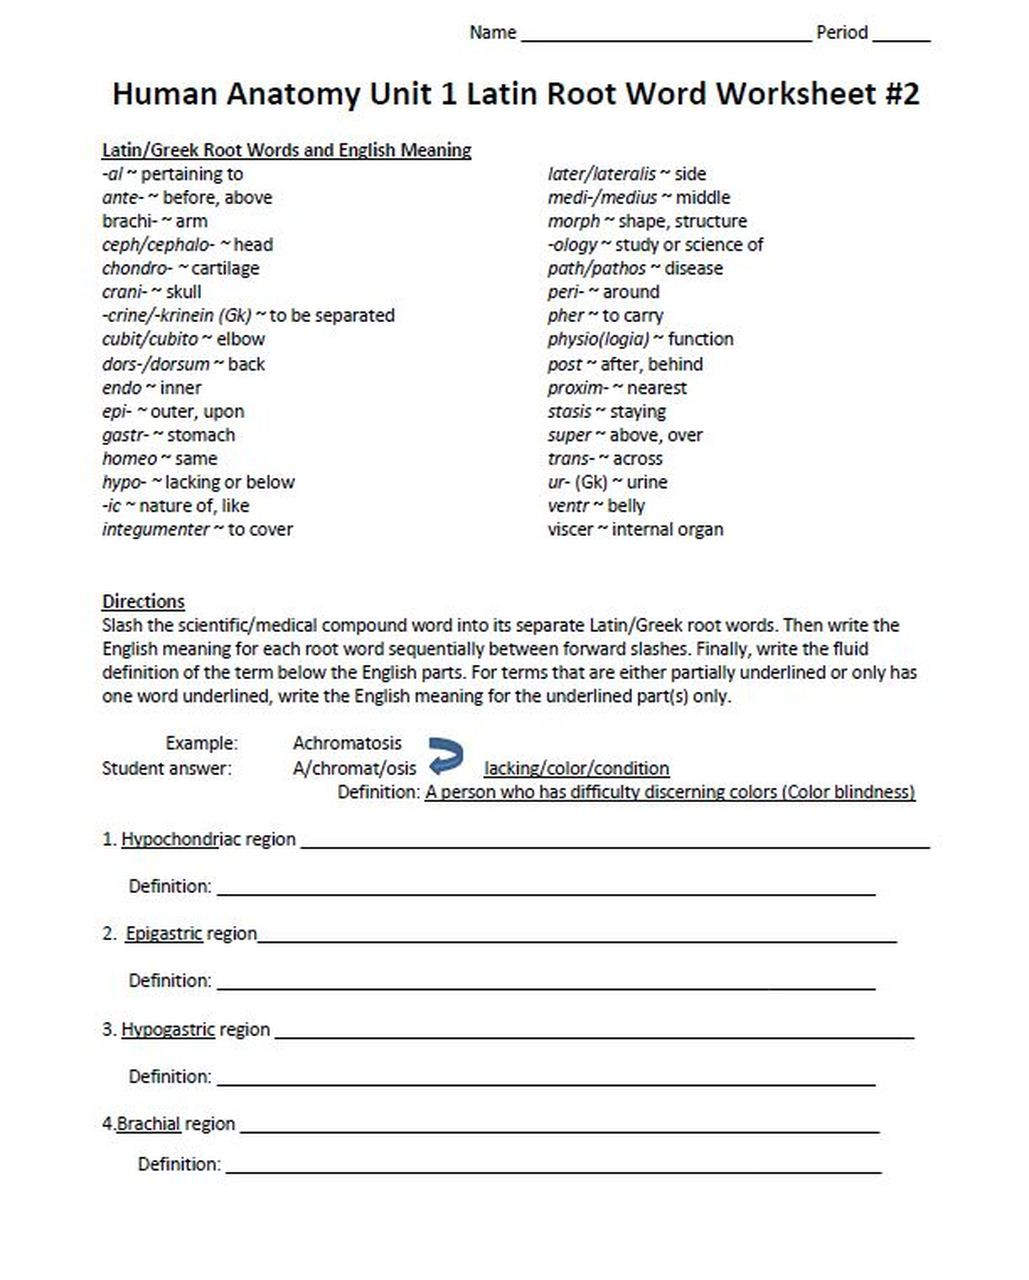 Root Word Worksheets Middle School Latin Root Word Worksheet Set for Unit E Human Anatomy & Physiology